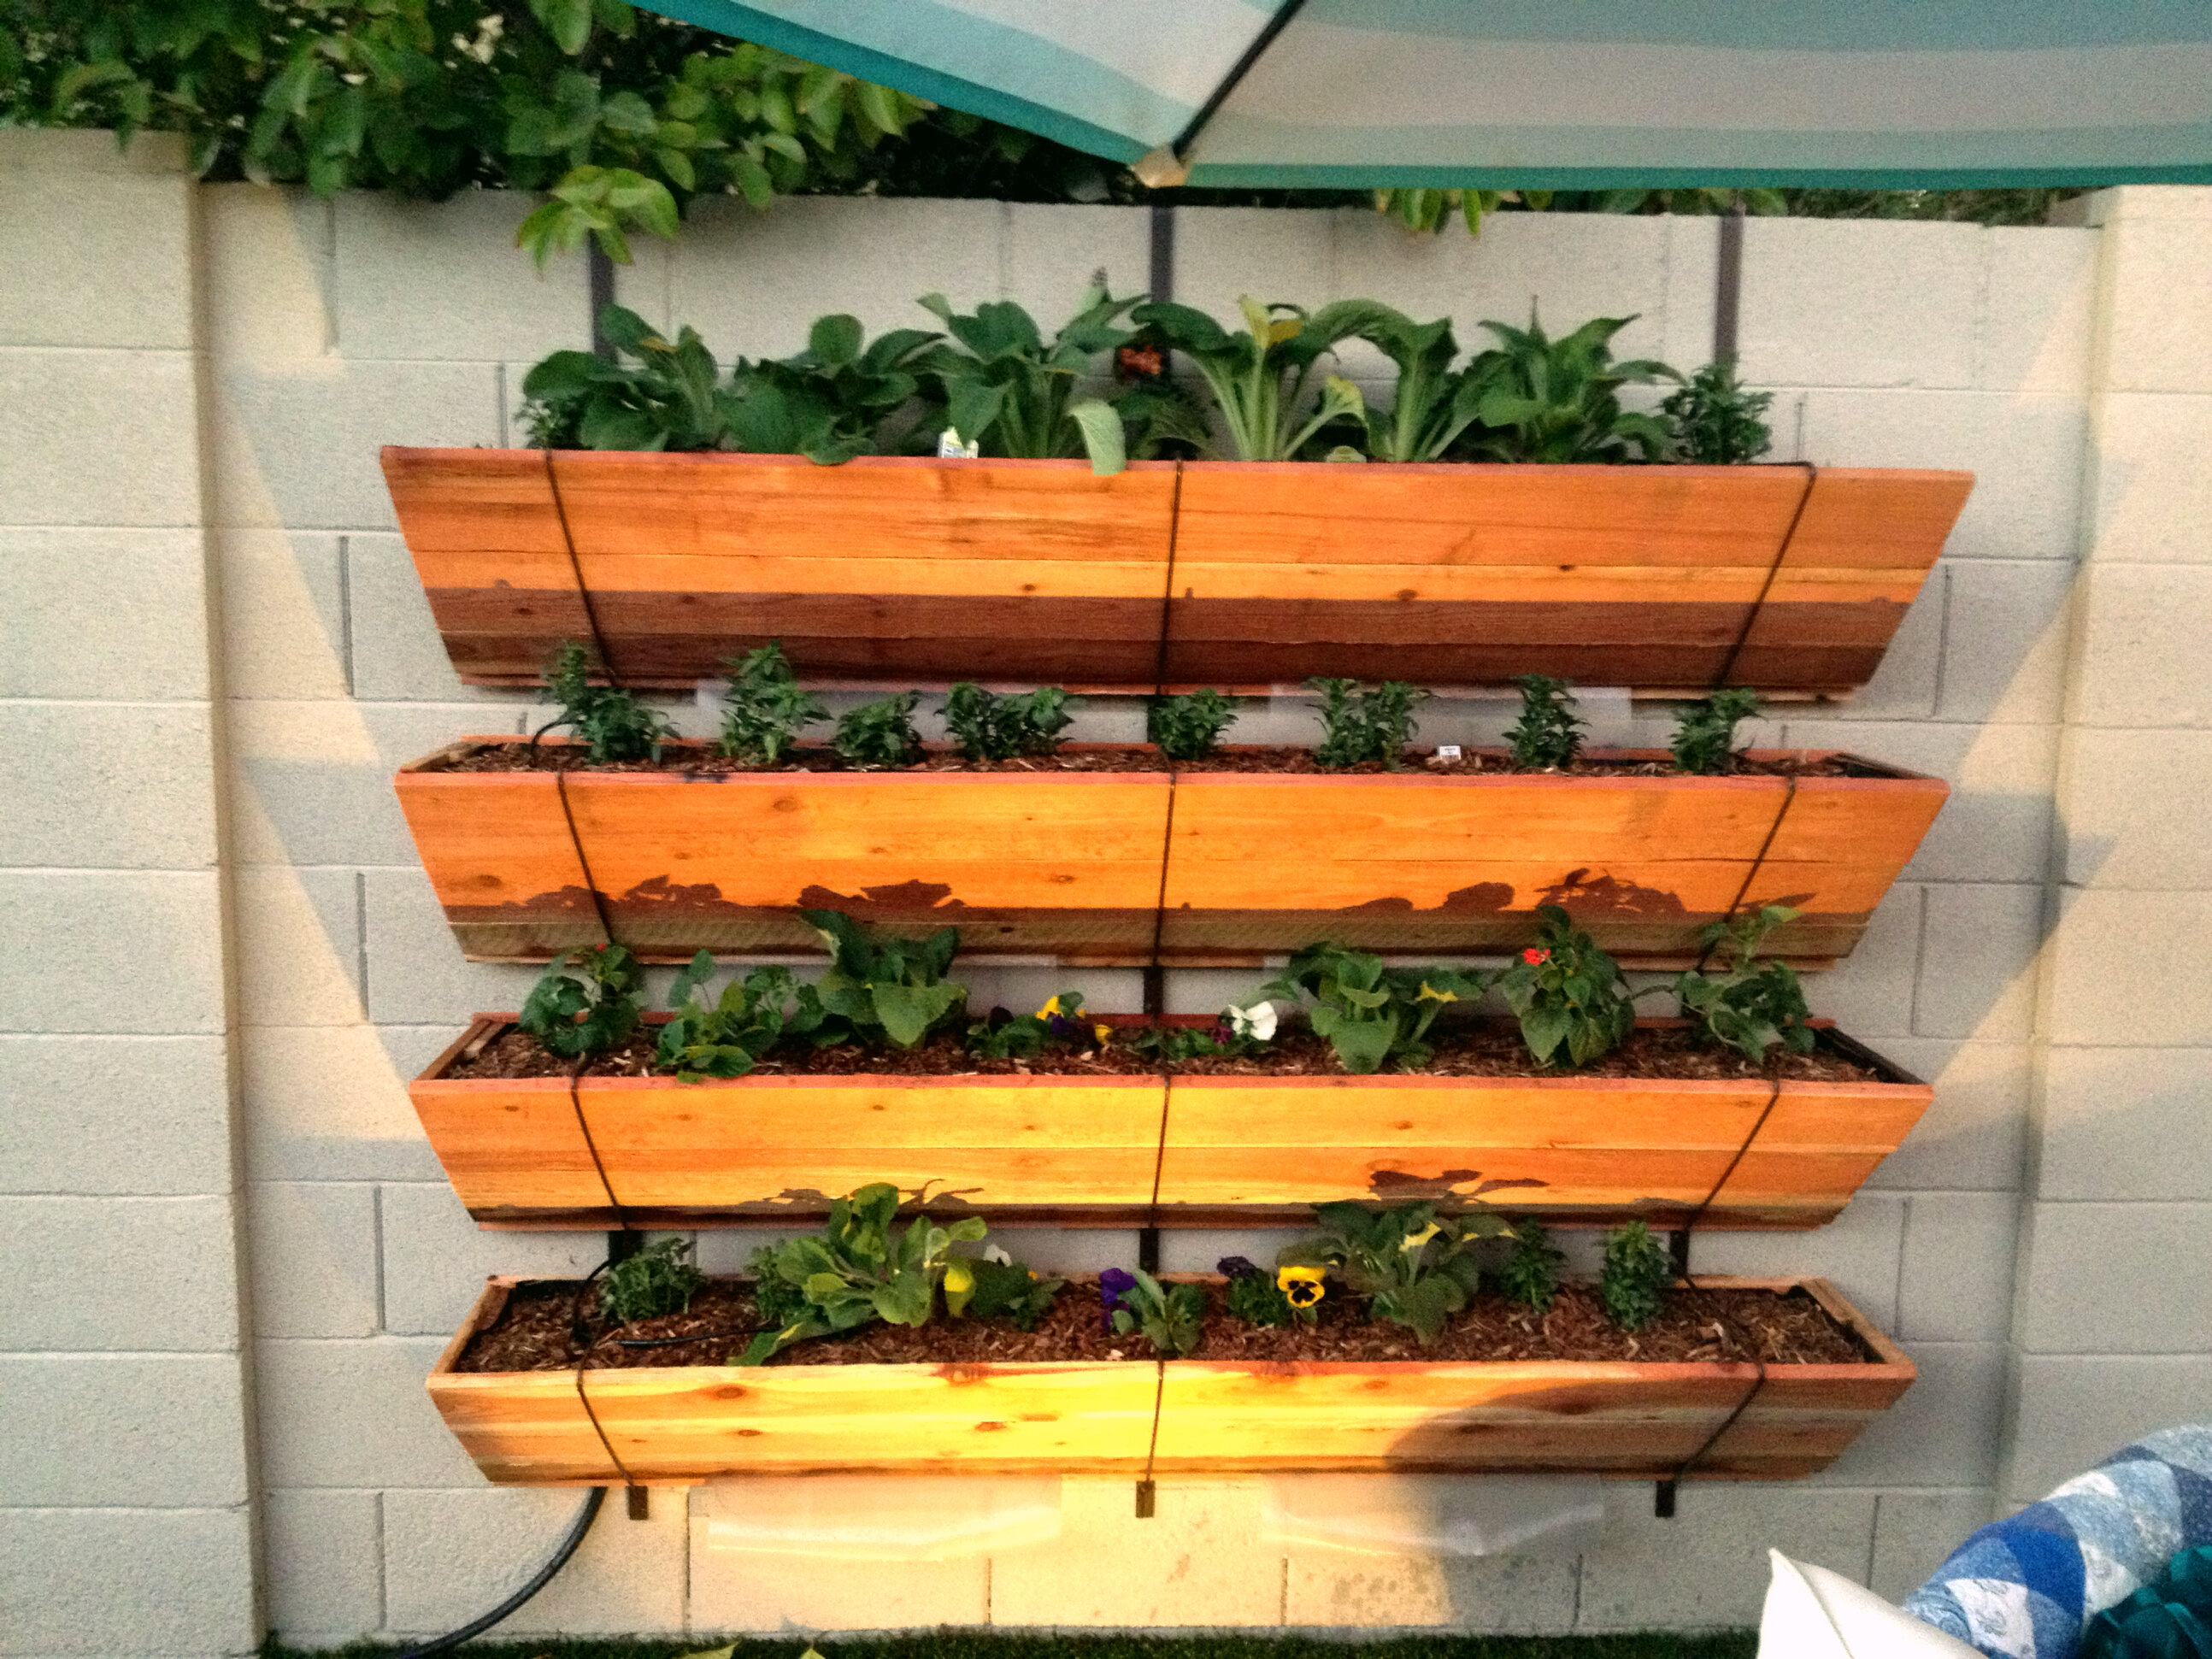 Tejeda 10 Tier Self-Watering Wood Vertical Garden